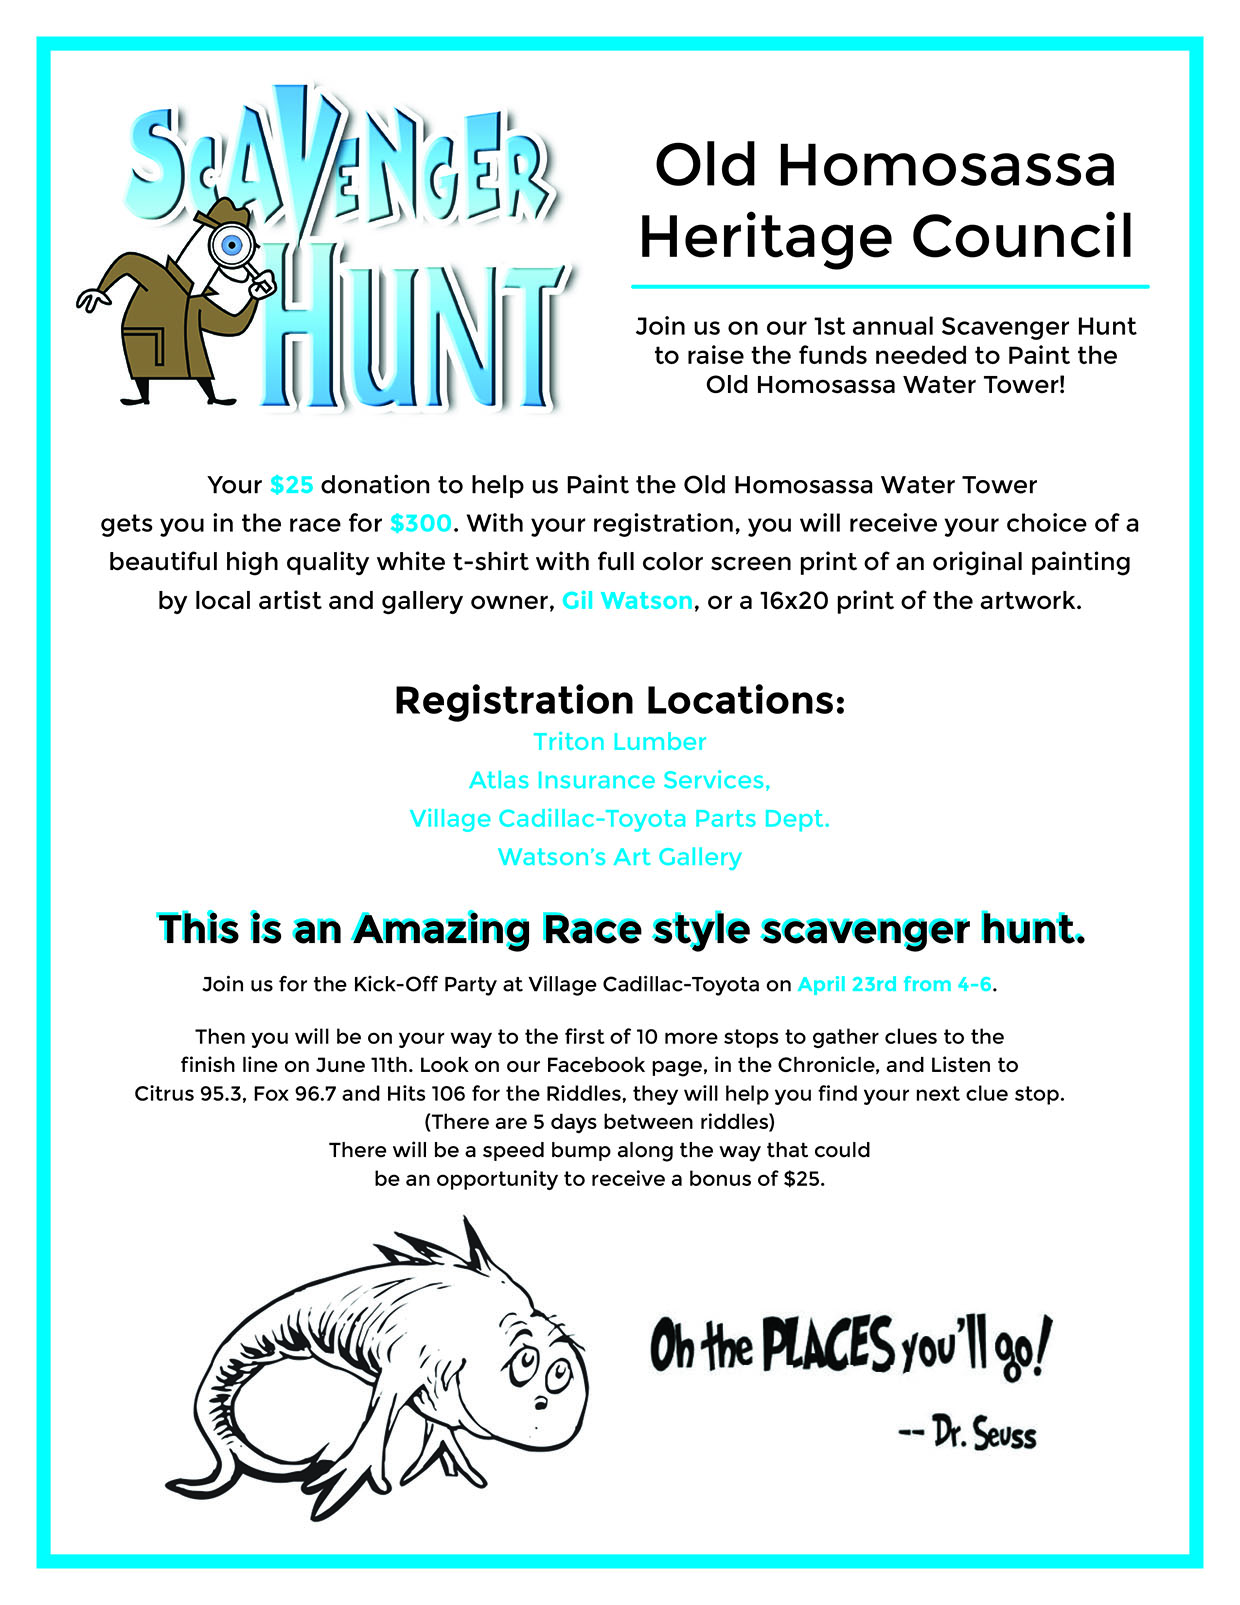 Scavenger Hunt with the Old Homosassa Heritage Council